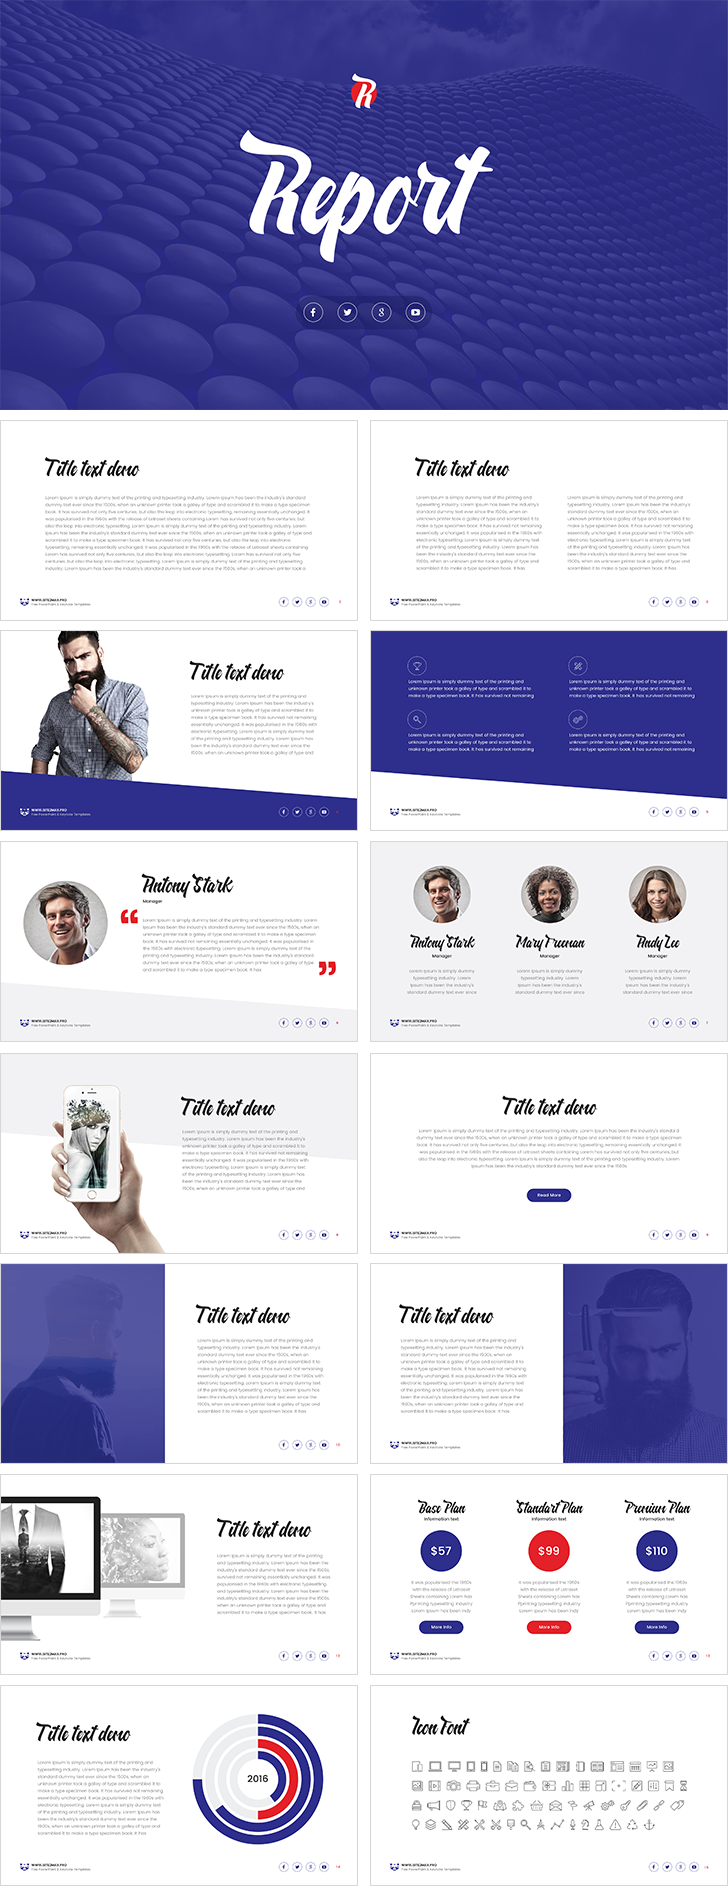 Report free powerpoint template download free report free powerpoint template toneelgroepblik Gallery